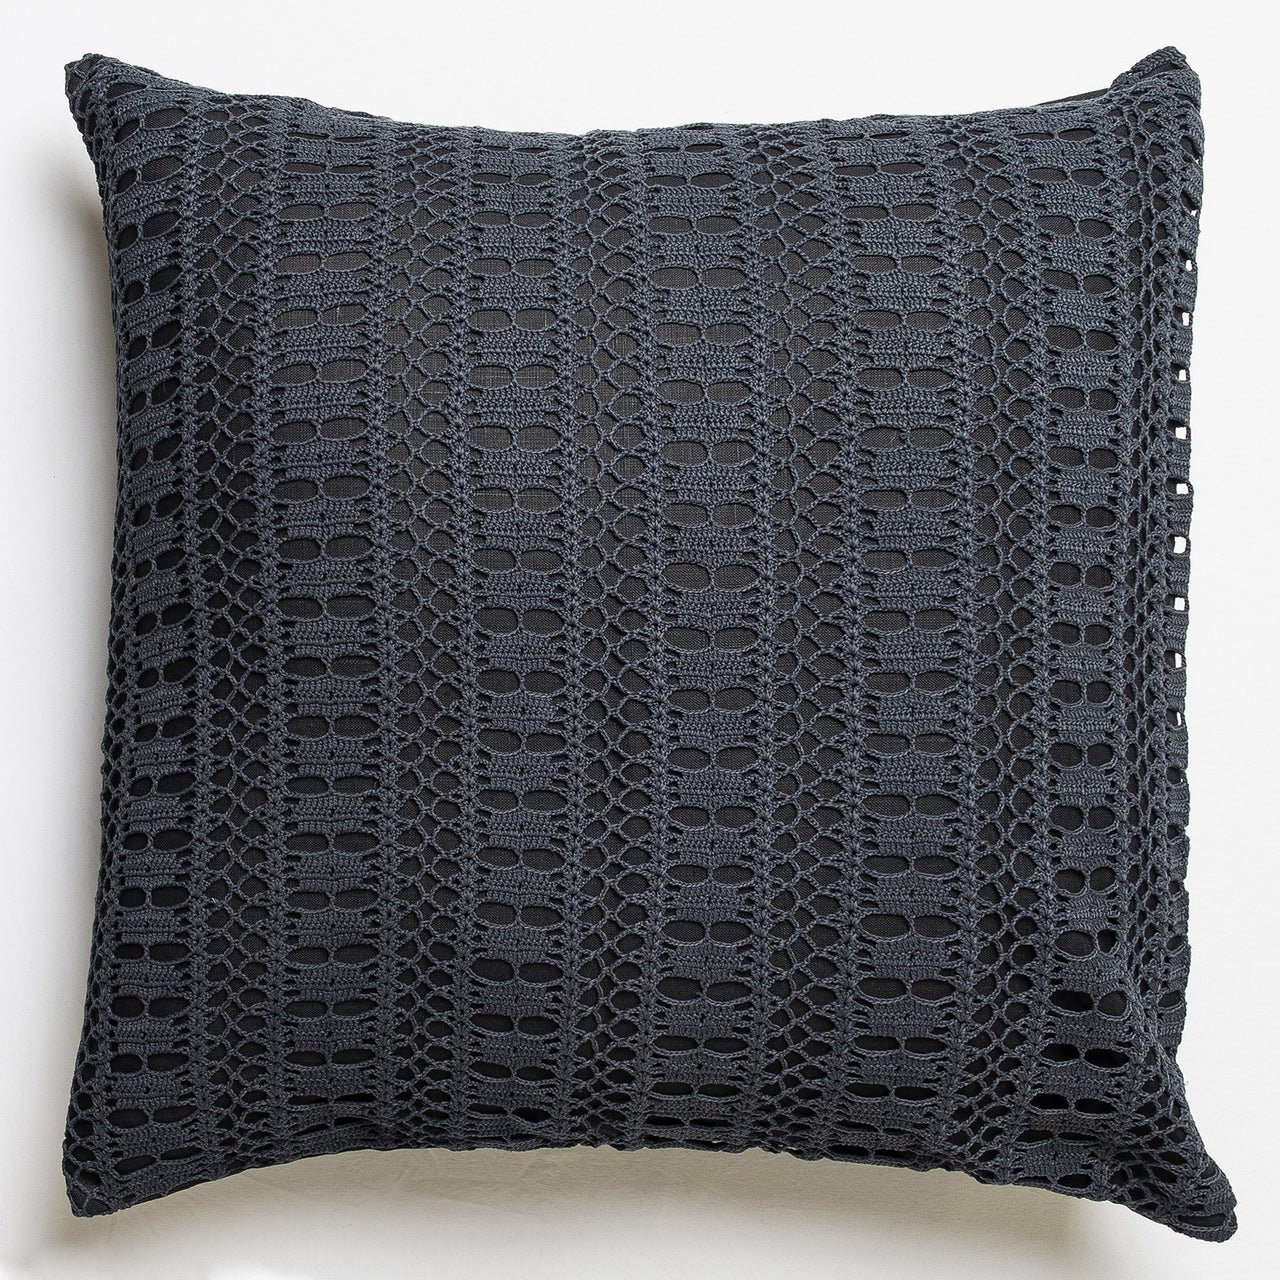 Each of these cushion is unique and a very exceptional piece, entirely handmade from vintage crochet lace collected around French regions by Veronique de Soultrait | colour:Black 1